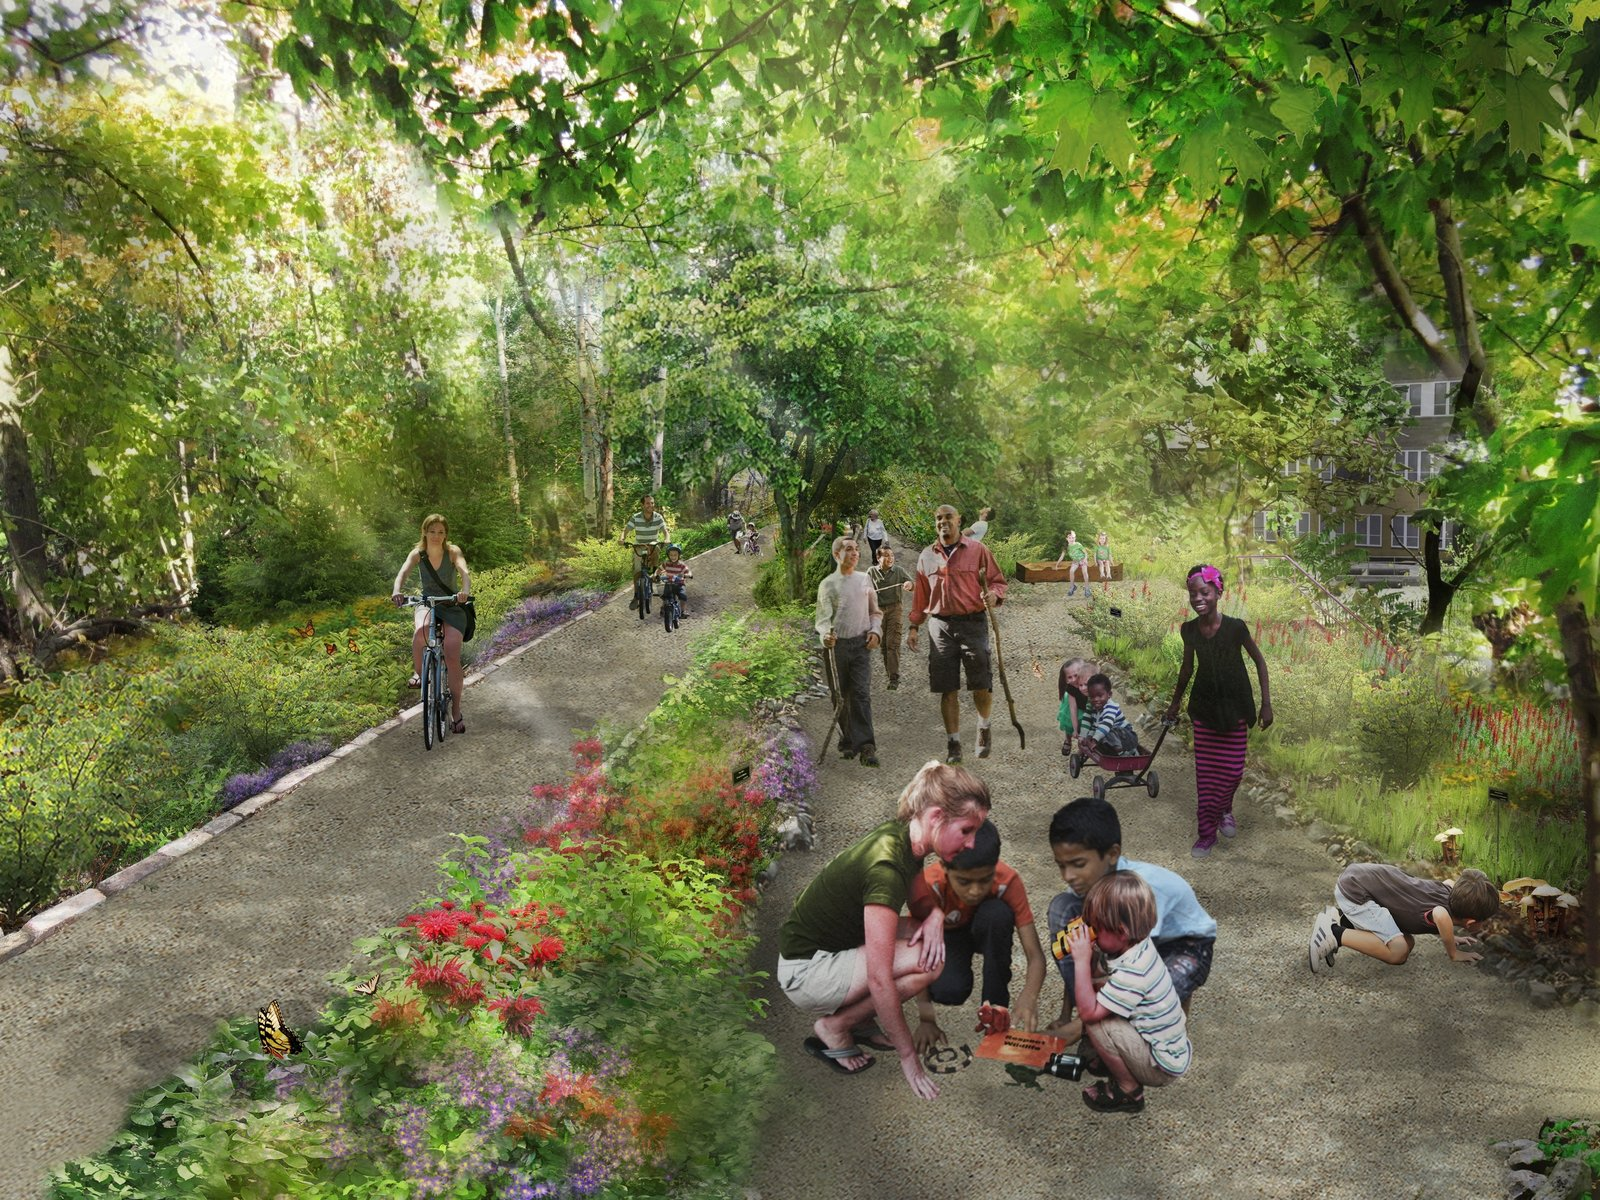 The QueensWay, as the proposed bike path and walkway is known, would connect Rego Park to Ozone Park. Its estimated $122 million price tag might be paid for through a mix of public and private funding.  Photo 5 of 5 in Discover How Parks Can Protect Cities from Natural Disasters at Dwell on Design New York